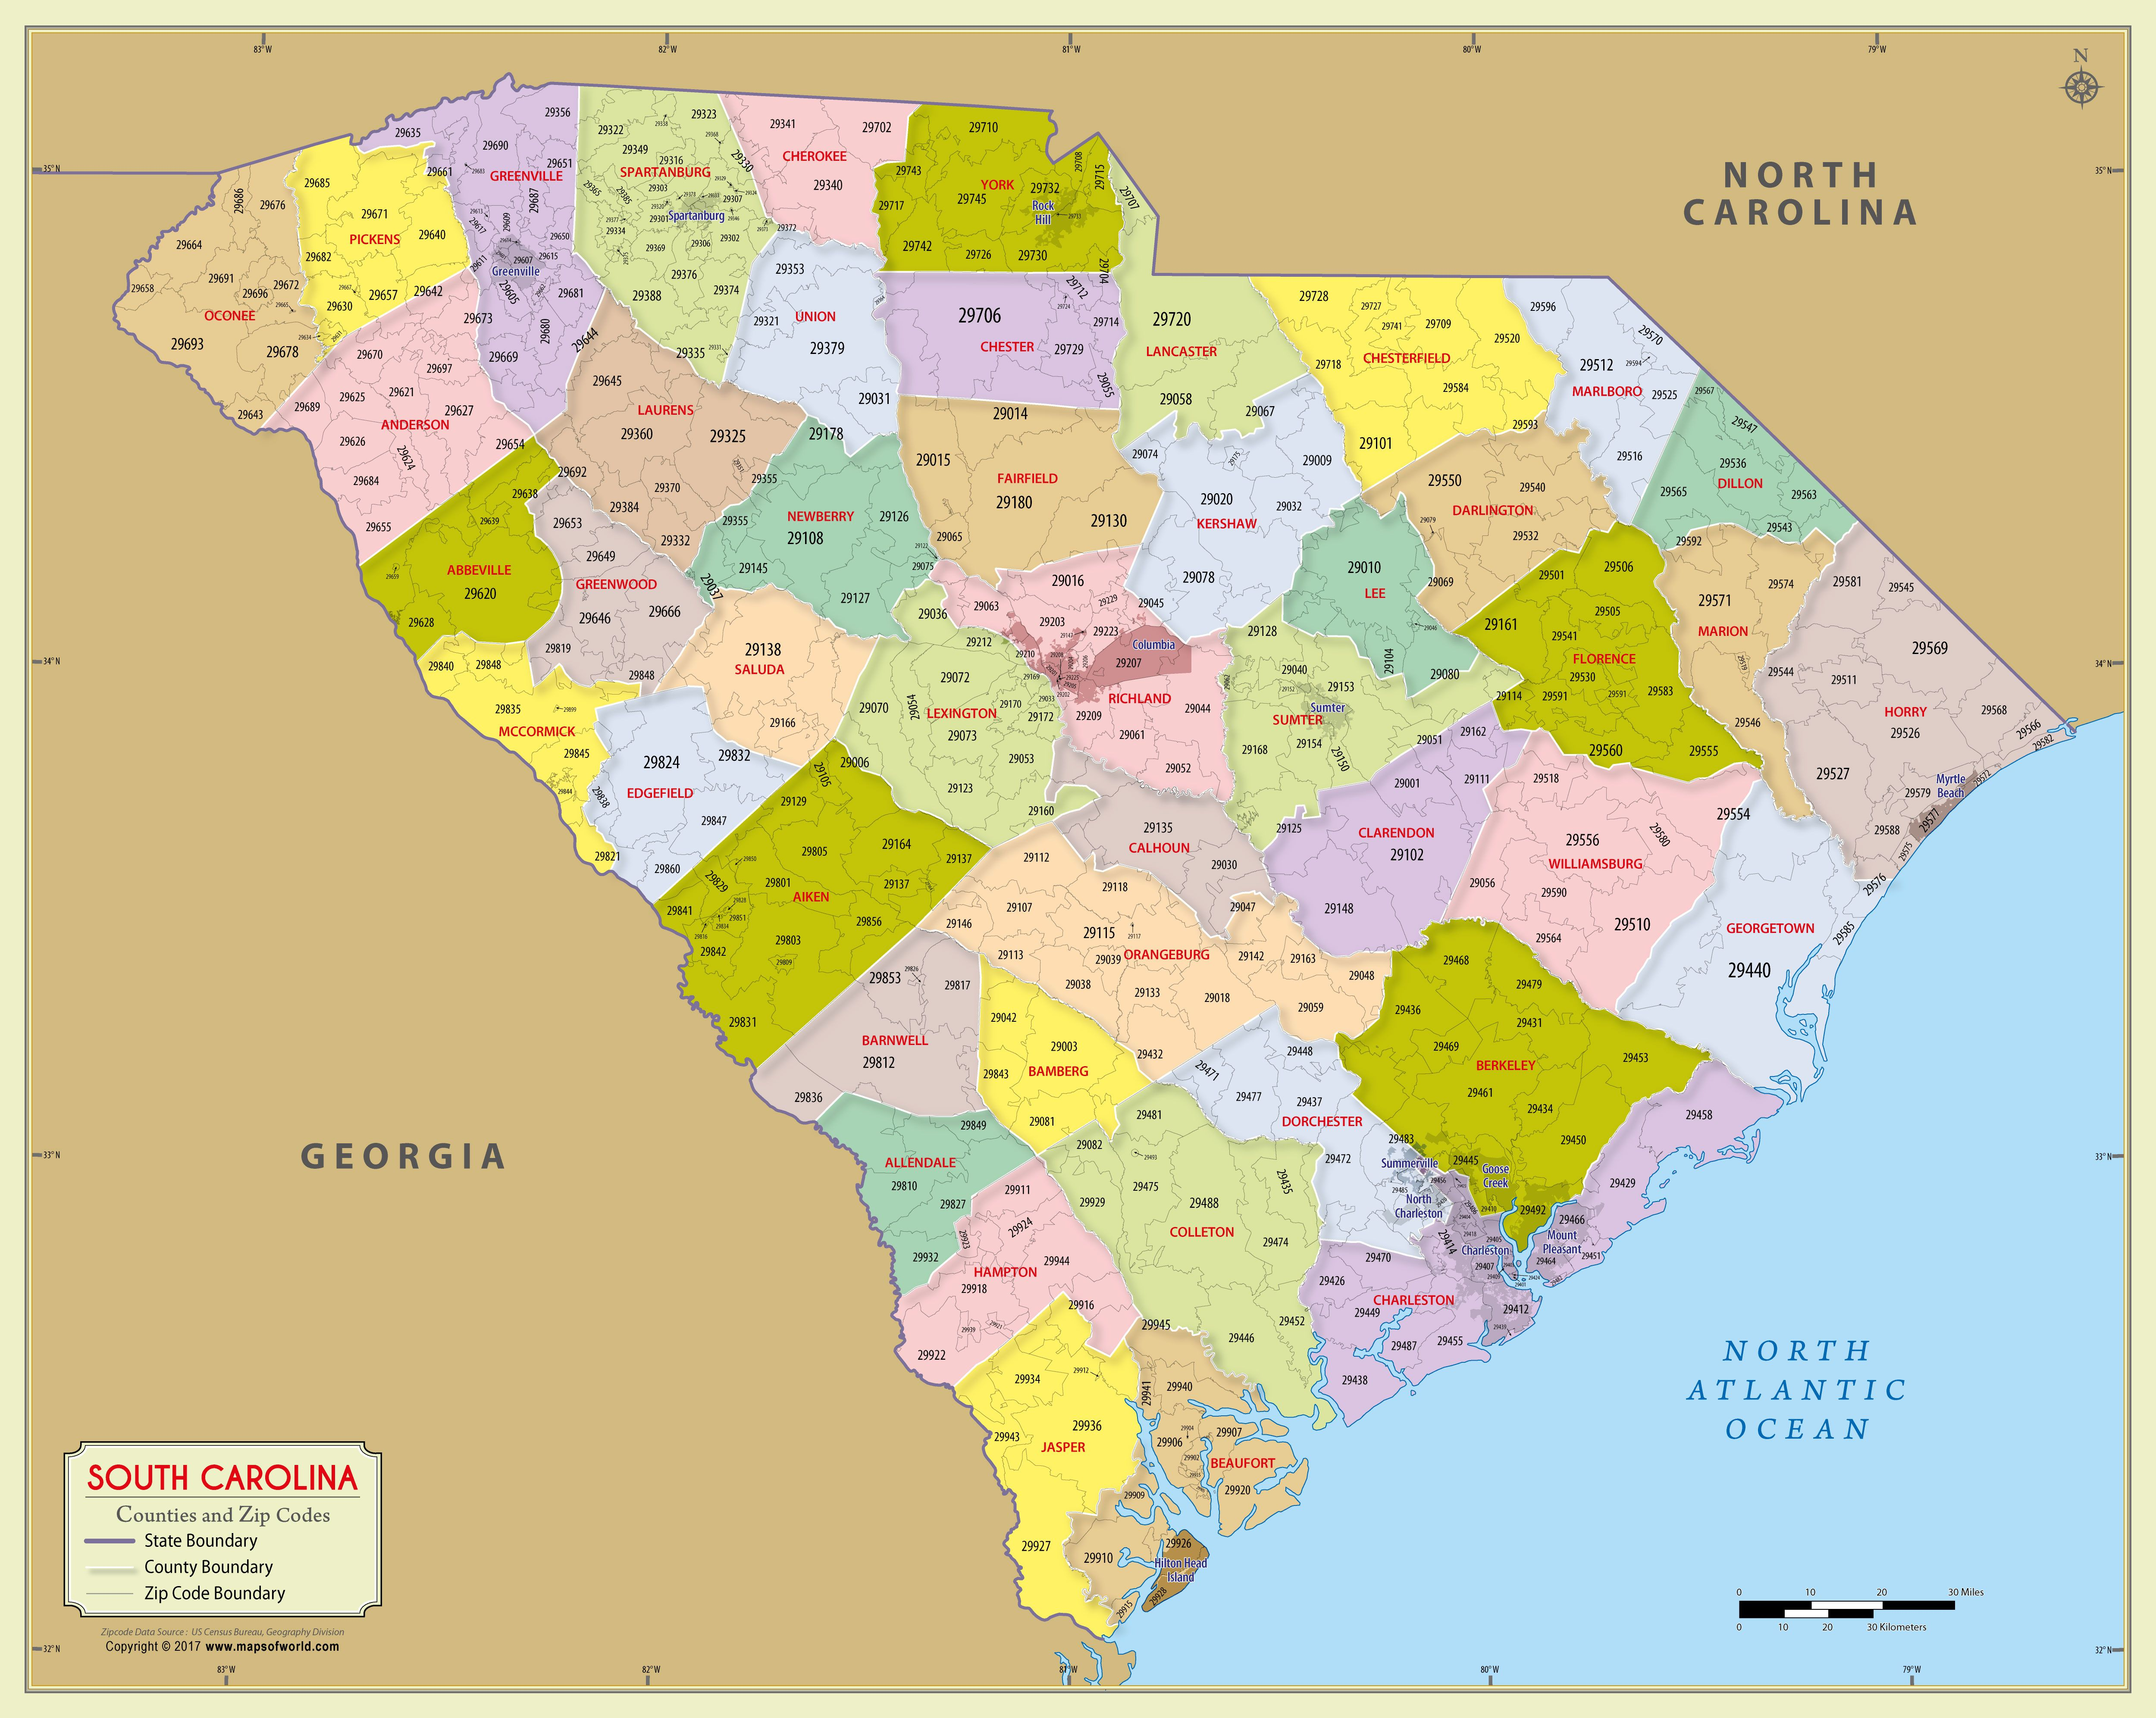 Buy South Carolina Zip Code Map With Counties | #worldmapstore